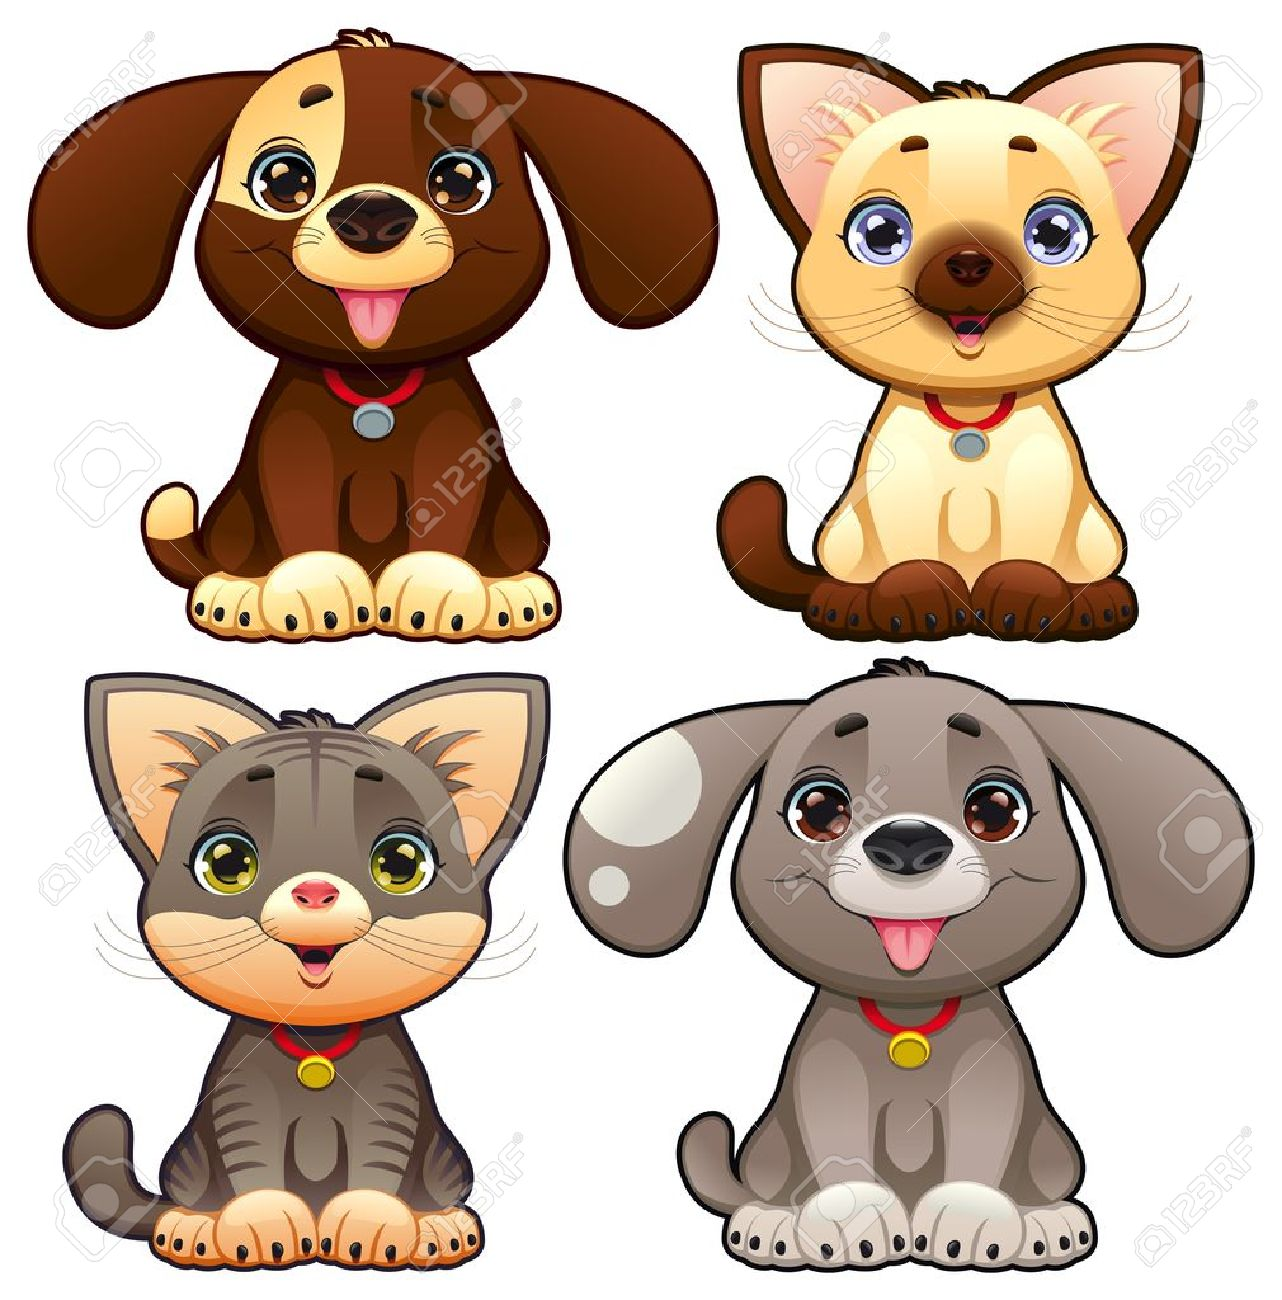 Cute dogs and cats. Funny cartoon and vector animal characters, isolated objects. Stock Vector - 15047344